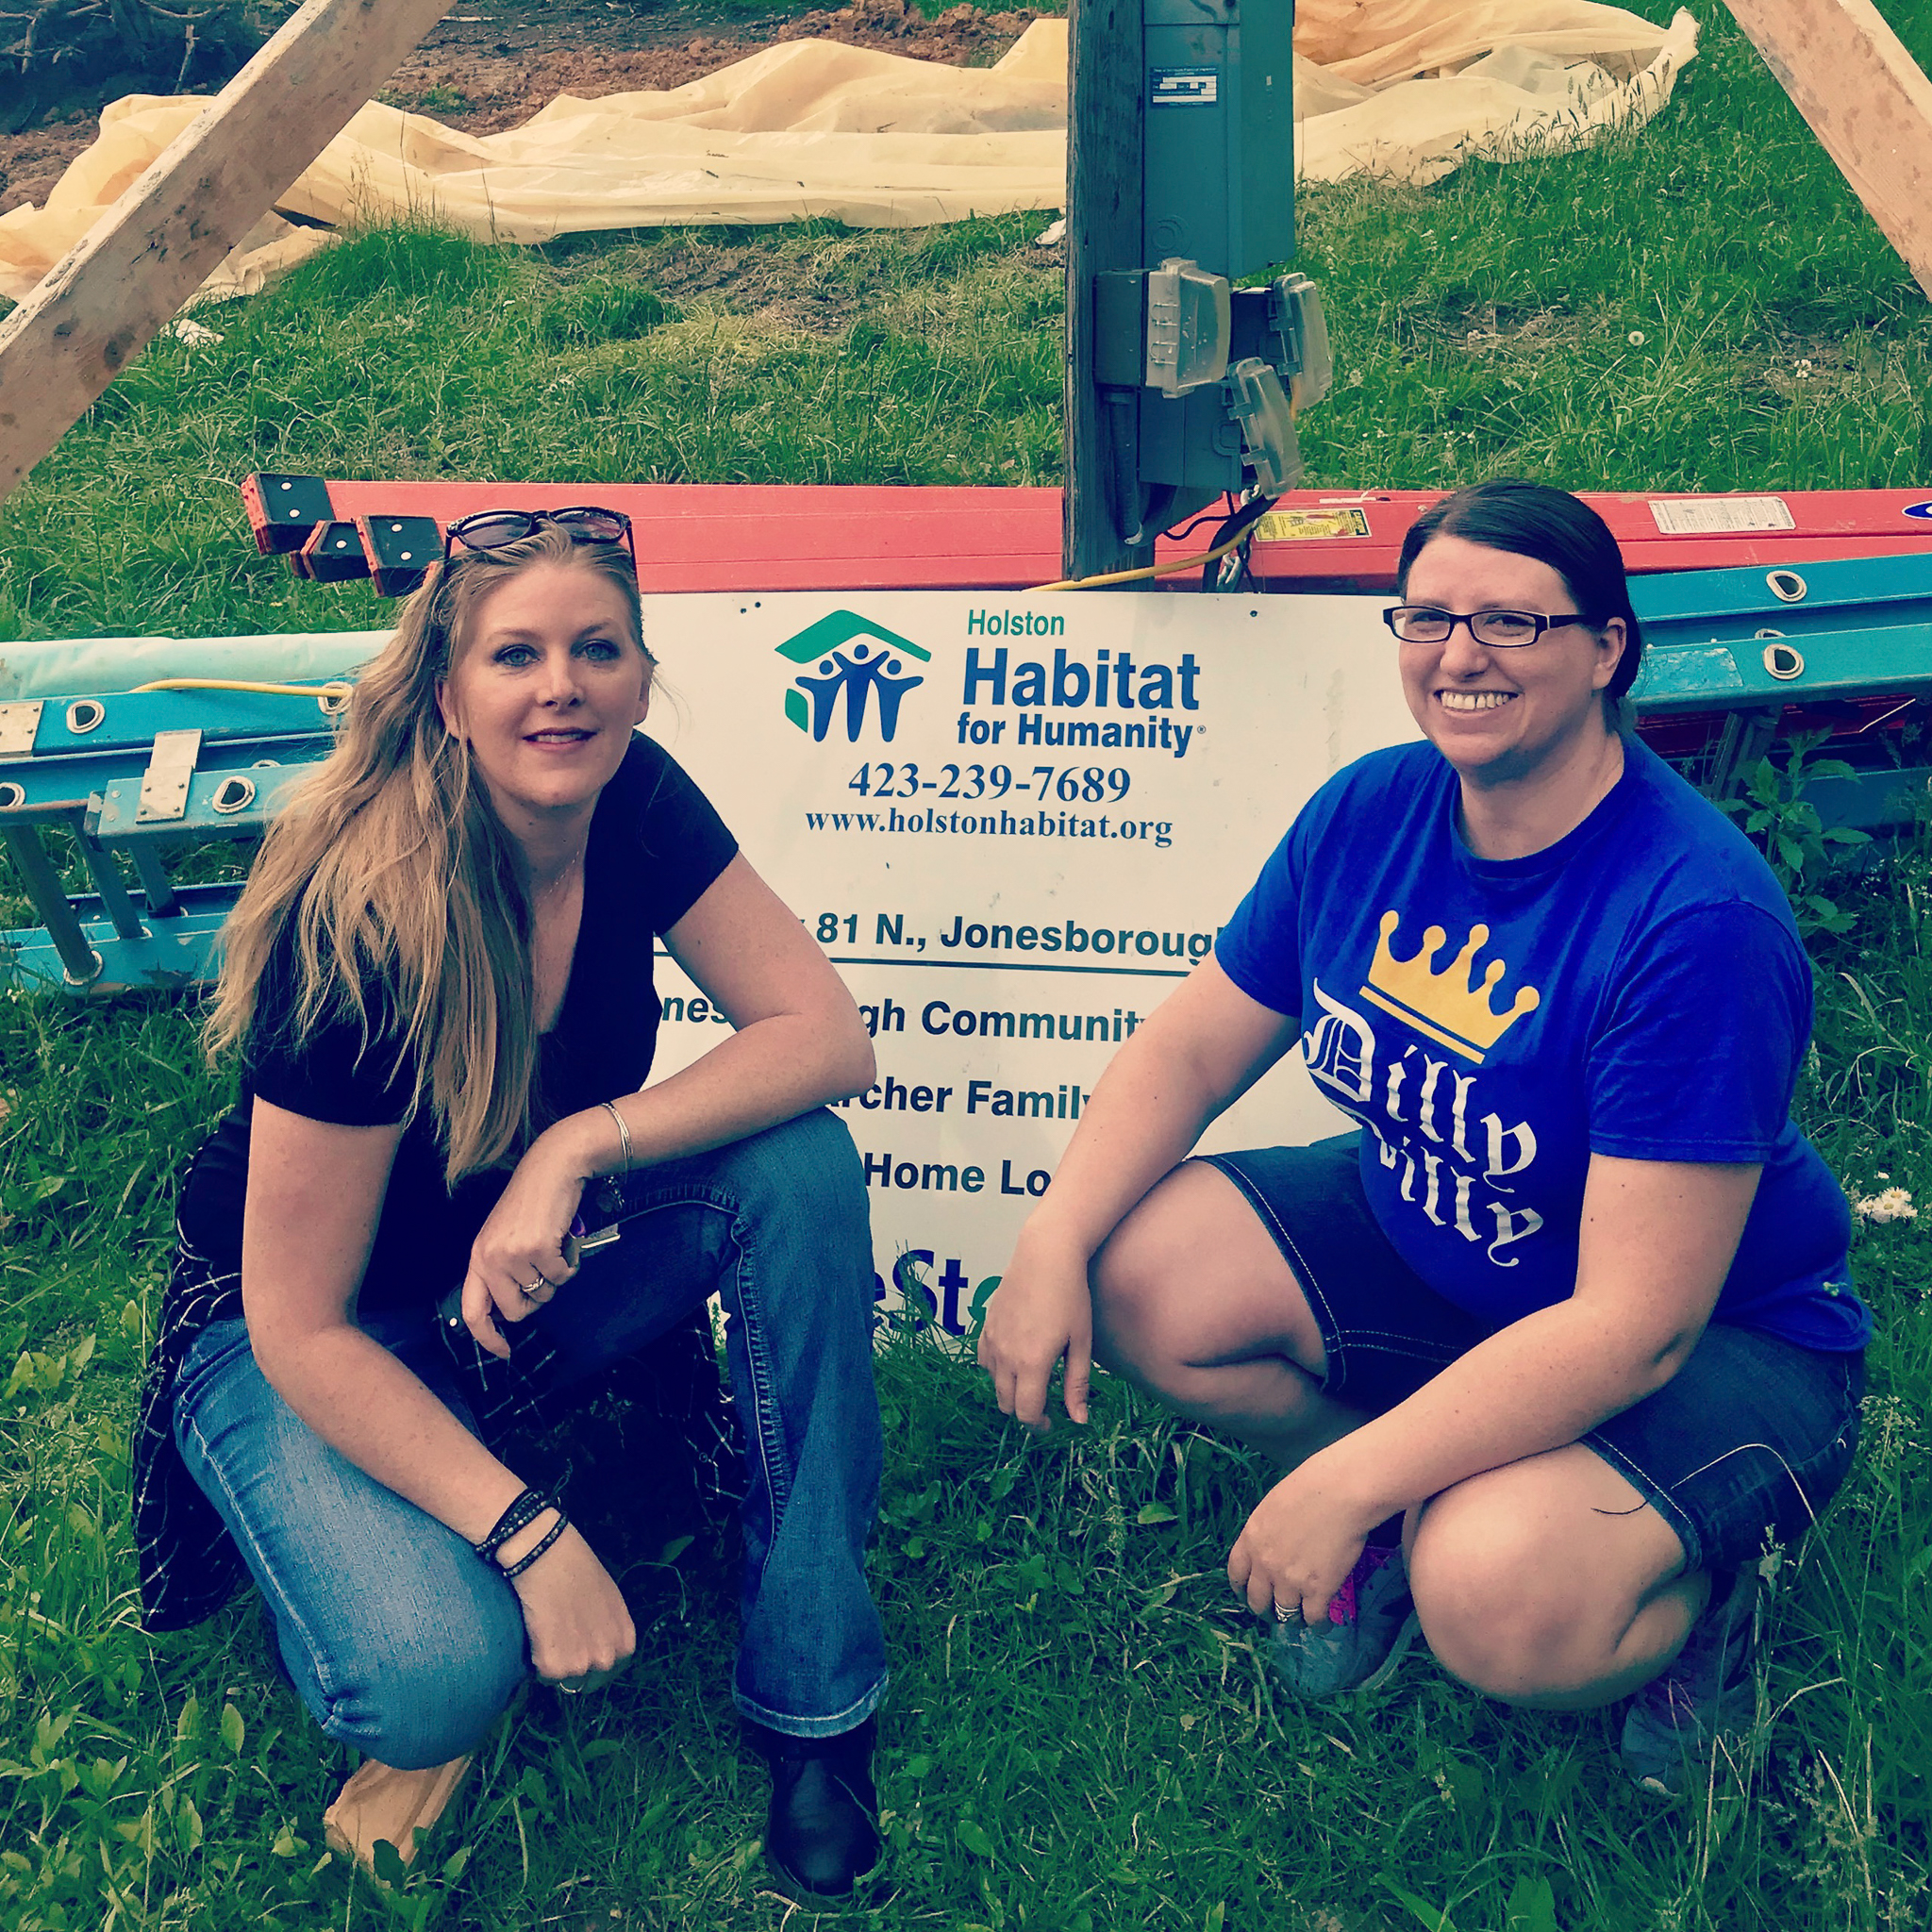 Allison and I at Habitat for Humanity